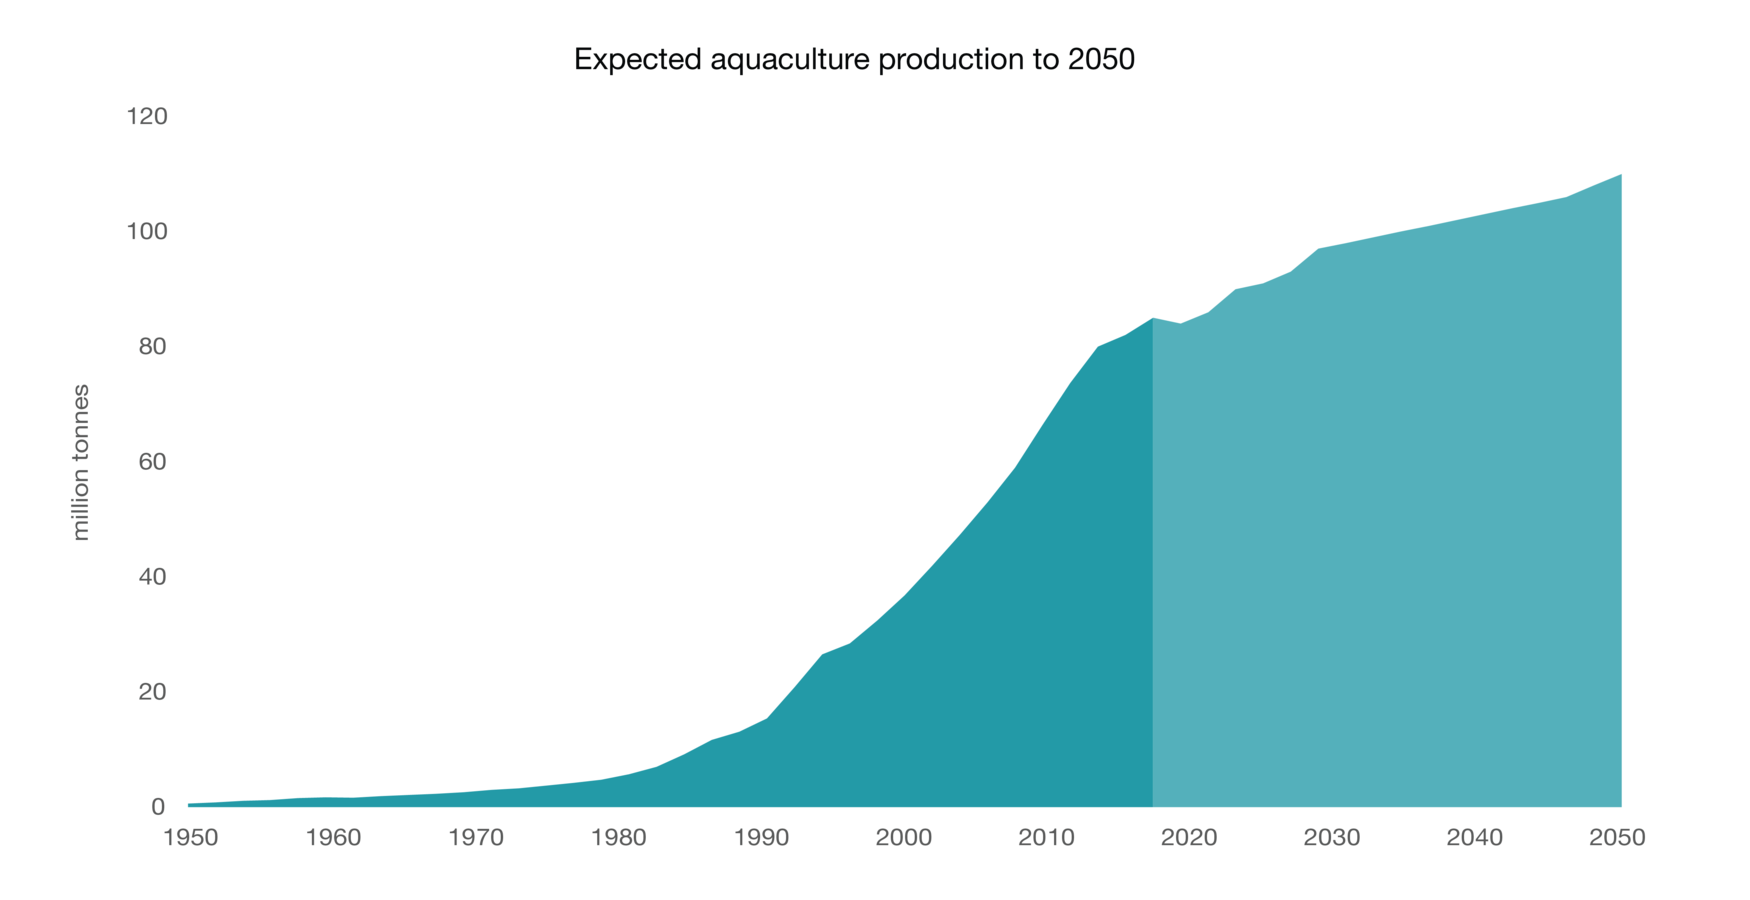 Aquaculture production to 2050